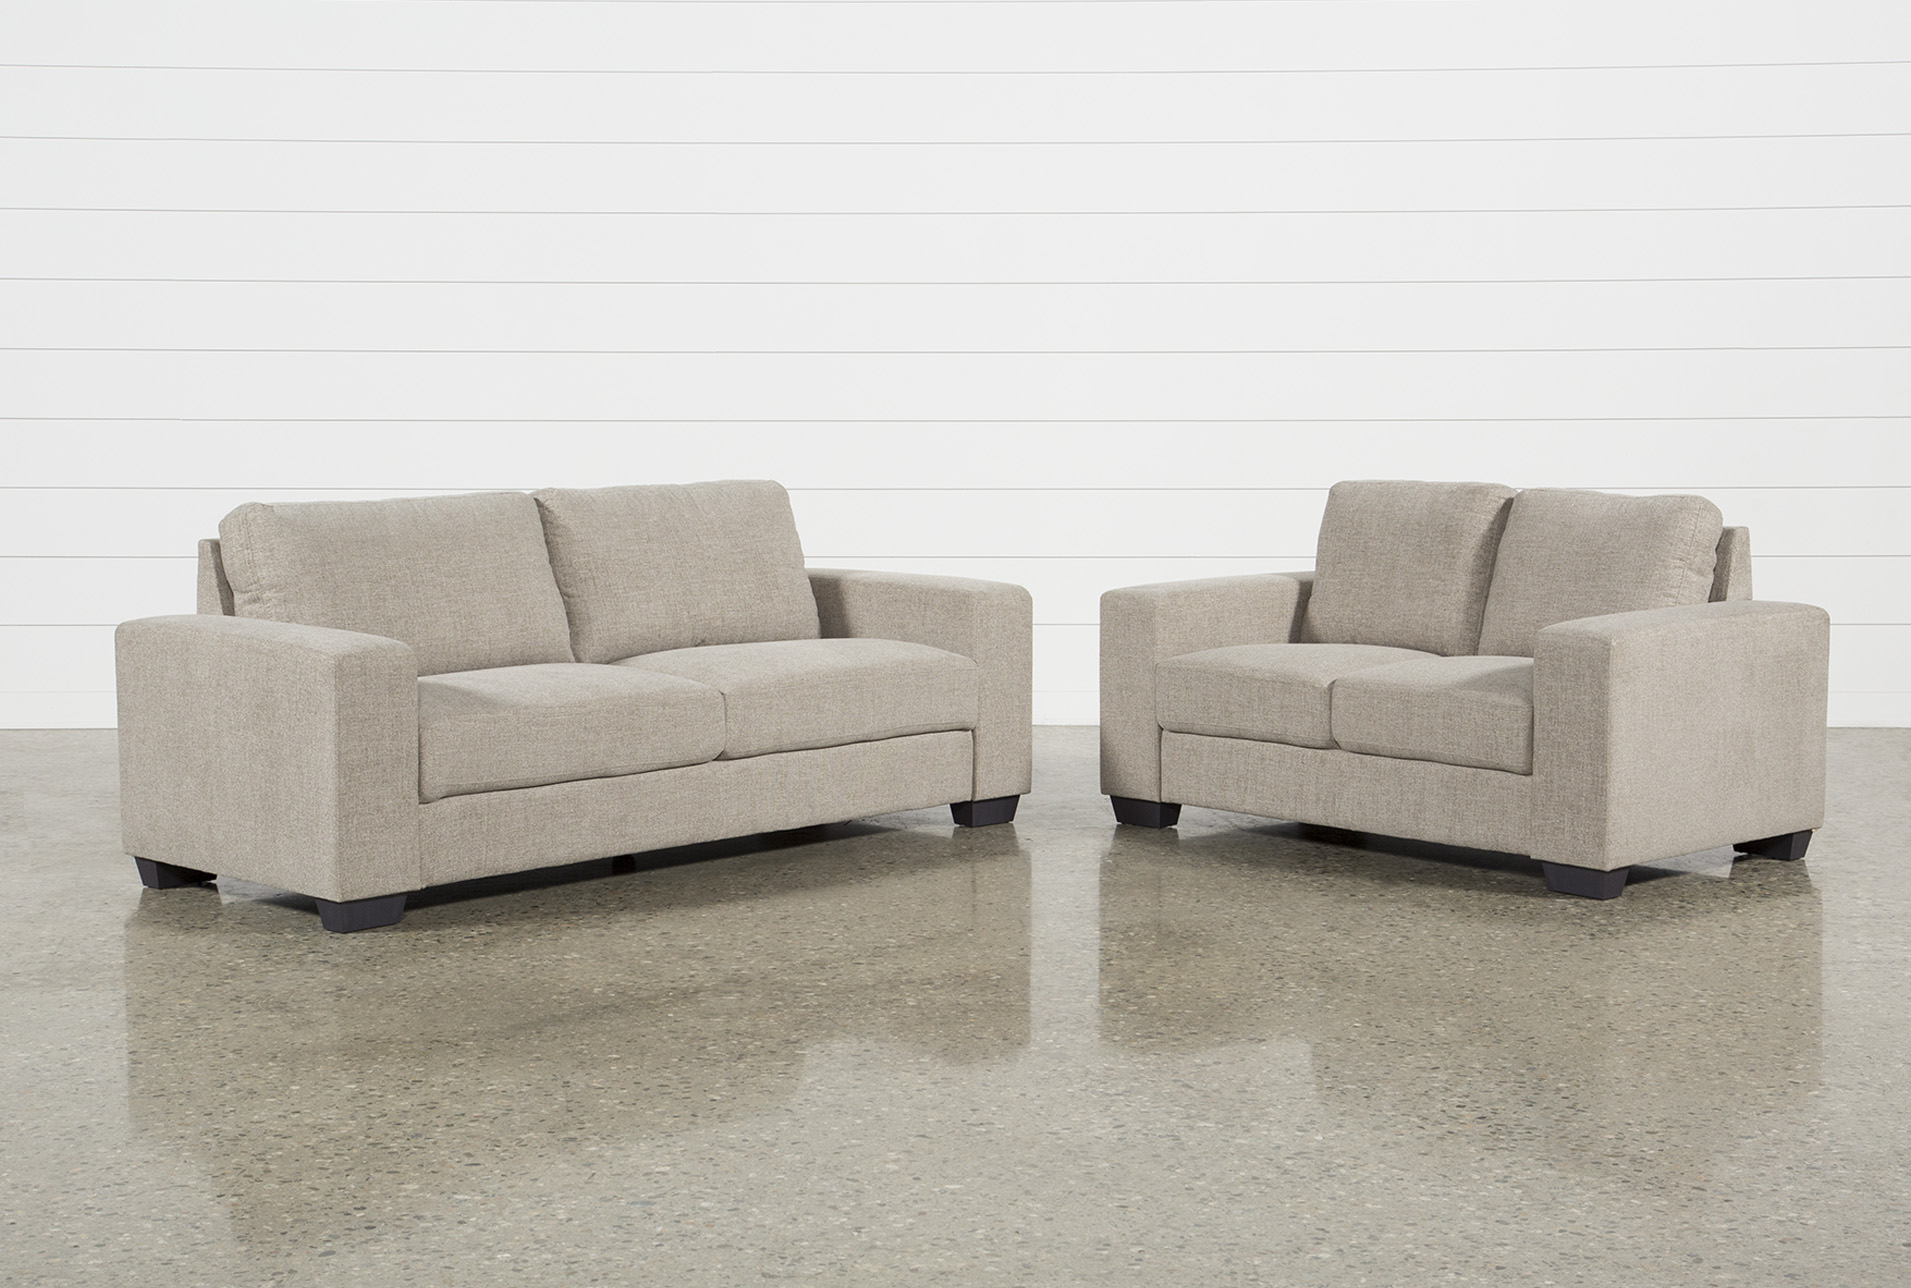 Exceptionnel Jobs Oat 2 Piece Set With Sofa And Loveseat   360